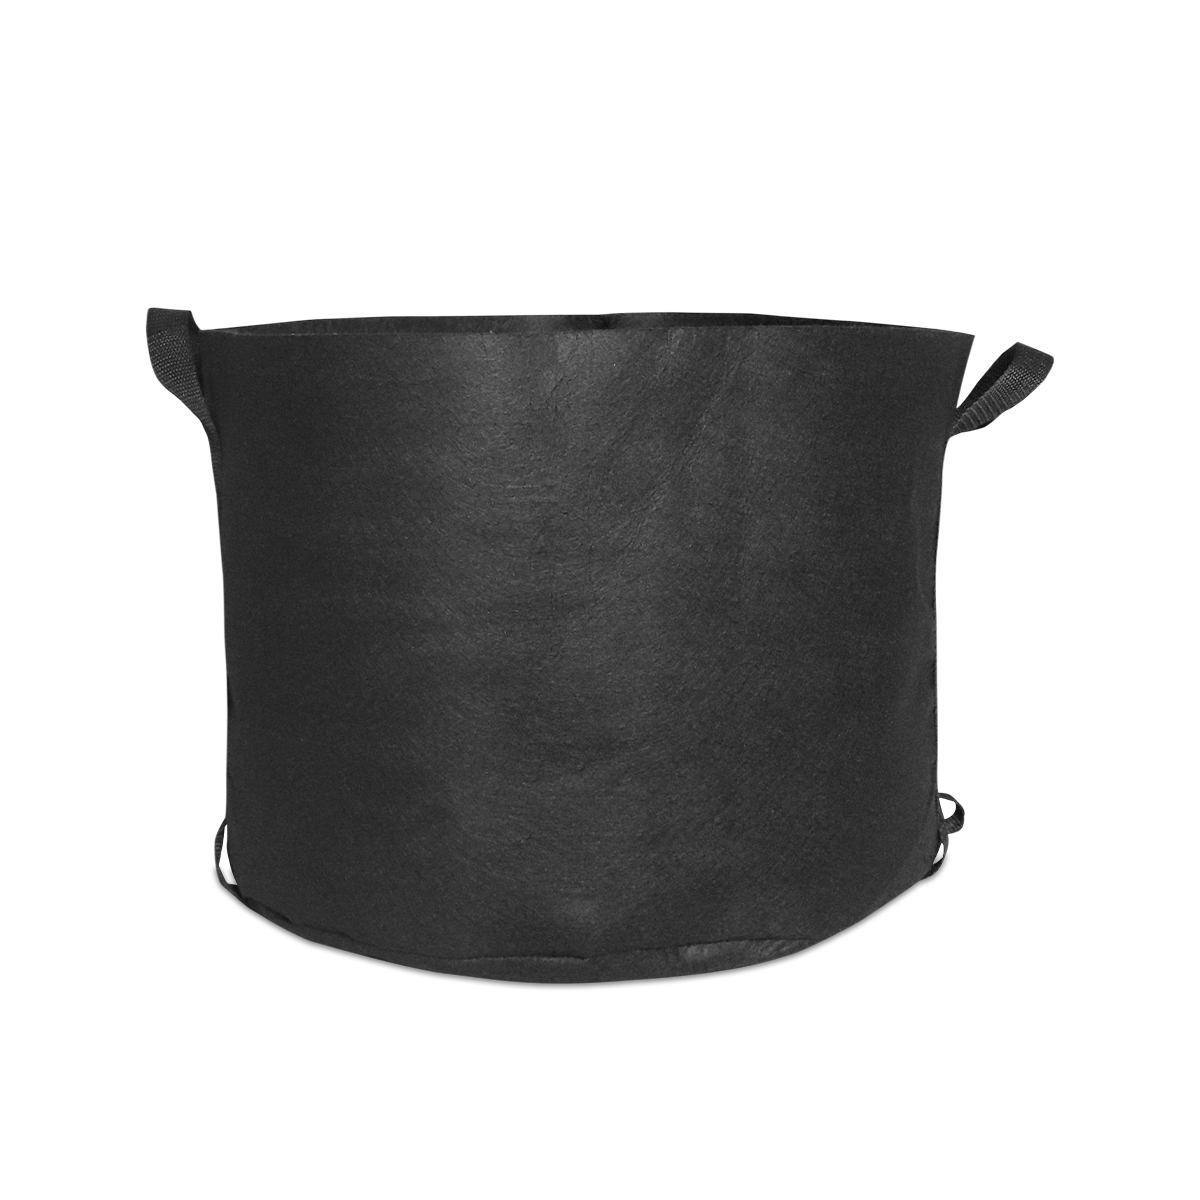 Phat Sack Black 10 Gallon Fabric Pot